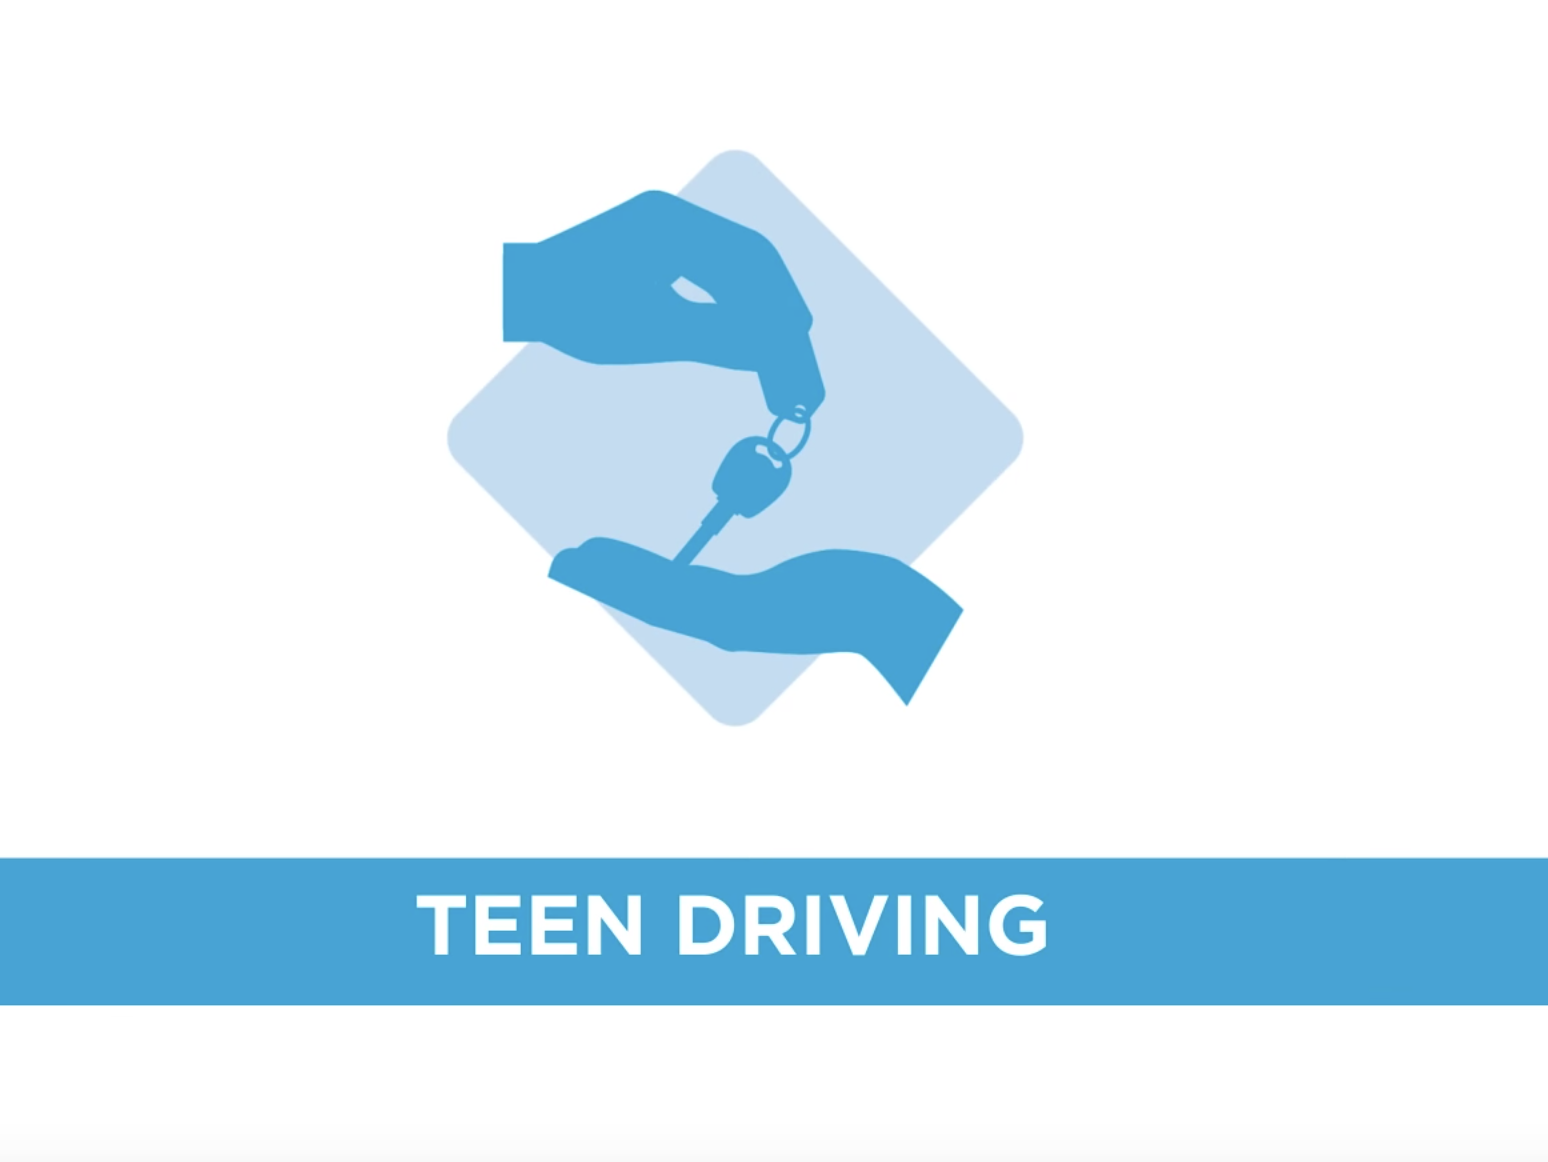 Pin on Teen Driving